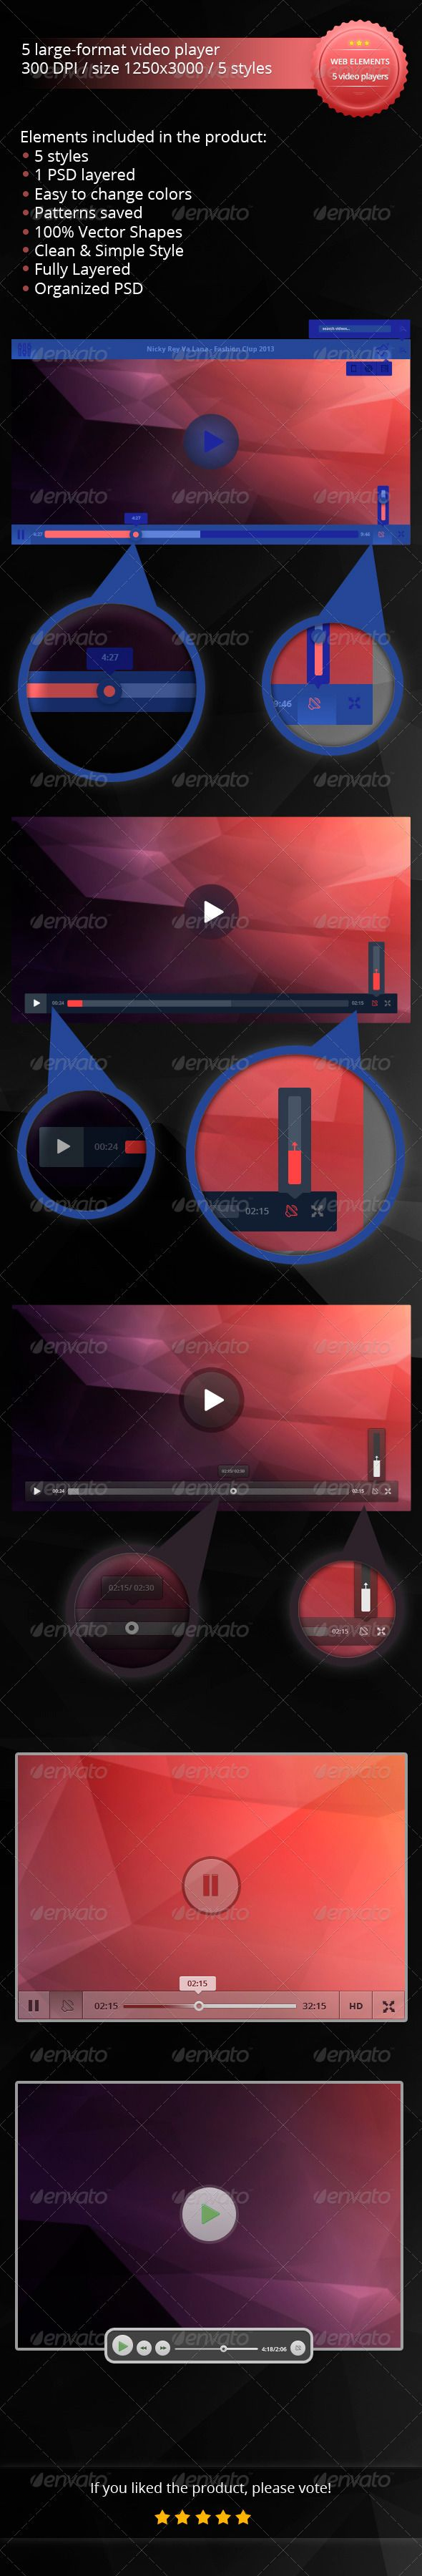 5 Large-Format Video Players  #GraphicRiver         List of files included in the item  list of files in the product:  Set of 5 large-format video players.  Lots of layered PSD file.  5 different styles.  It is easy to change the color, shape, effects.  100% Vector Shapes.  Fully Layered & Organized PSD.  Clean & Simple Style.  All folders are well signed.   Features  Organized layer structure  	 The files are very easy to navigate. All layers are named and organized in groups and subgroups…